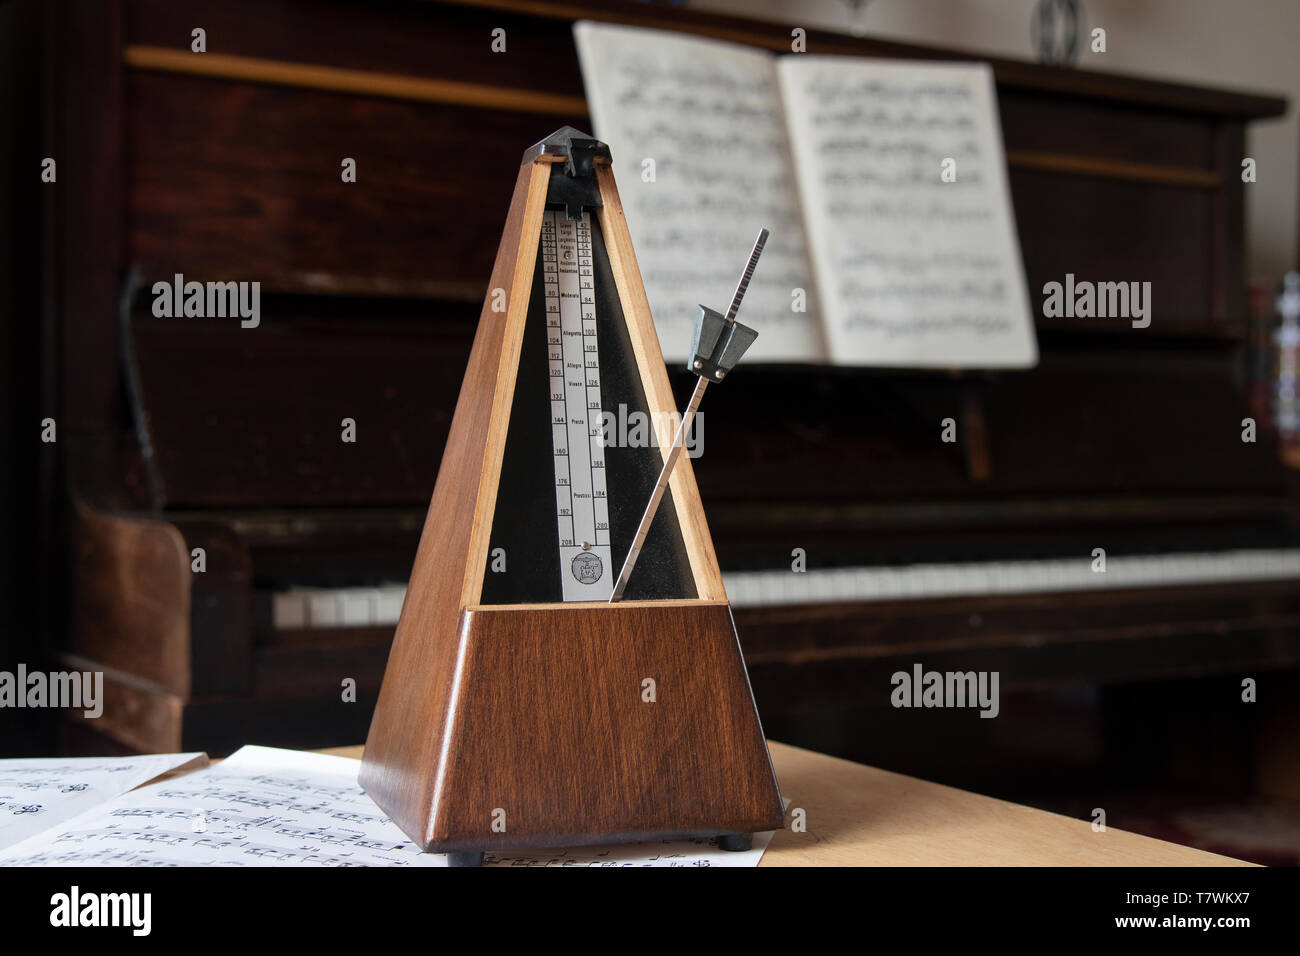 Old style Paquet wooden pyramid metronome standing on bundle of sheet music, in front of an open piano. - Stock Image